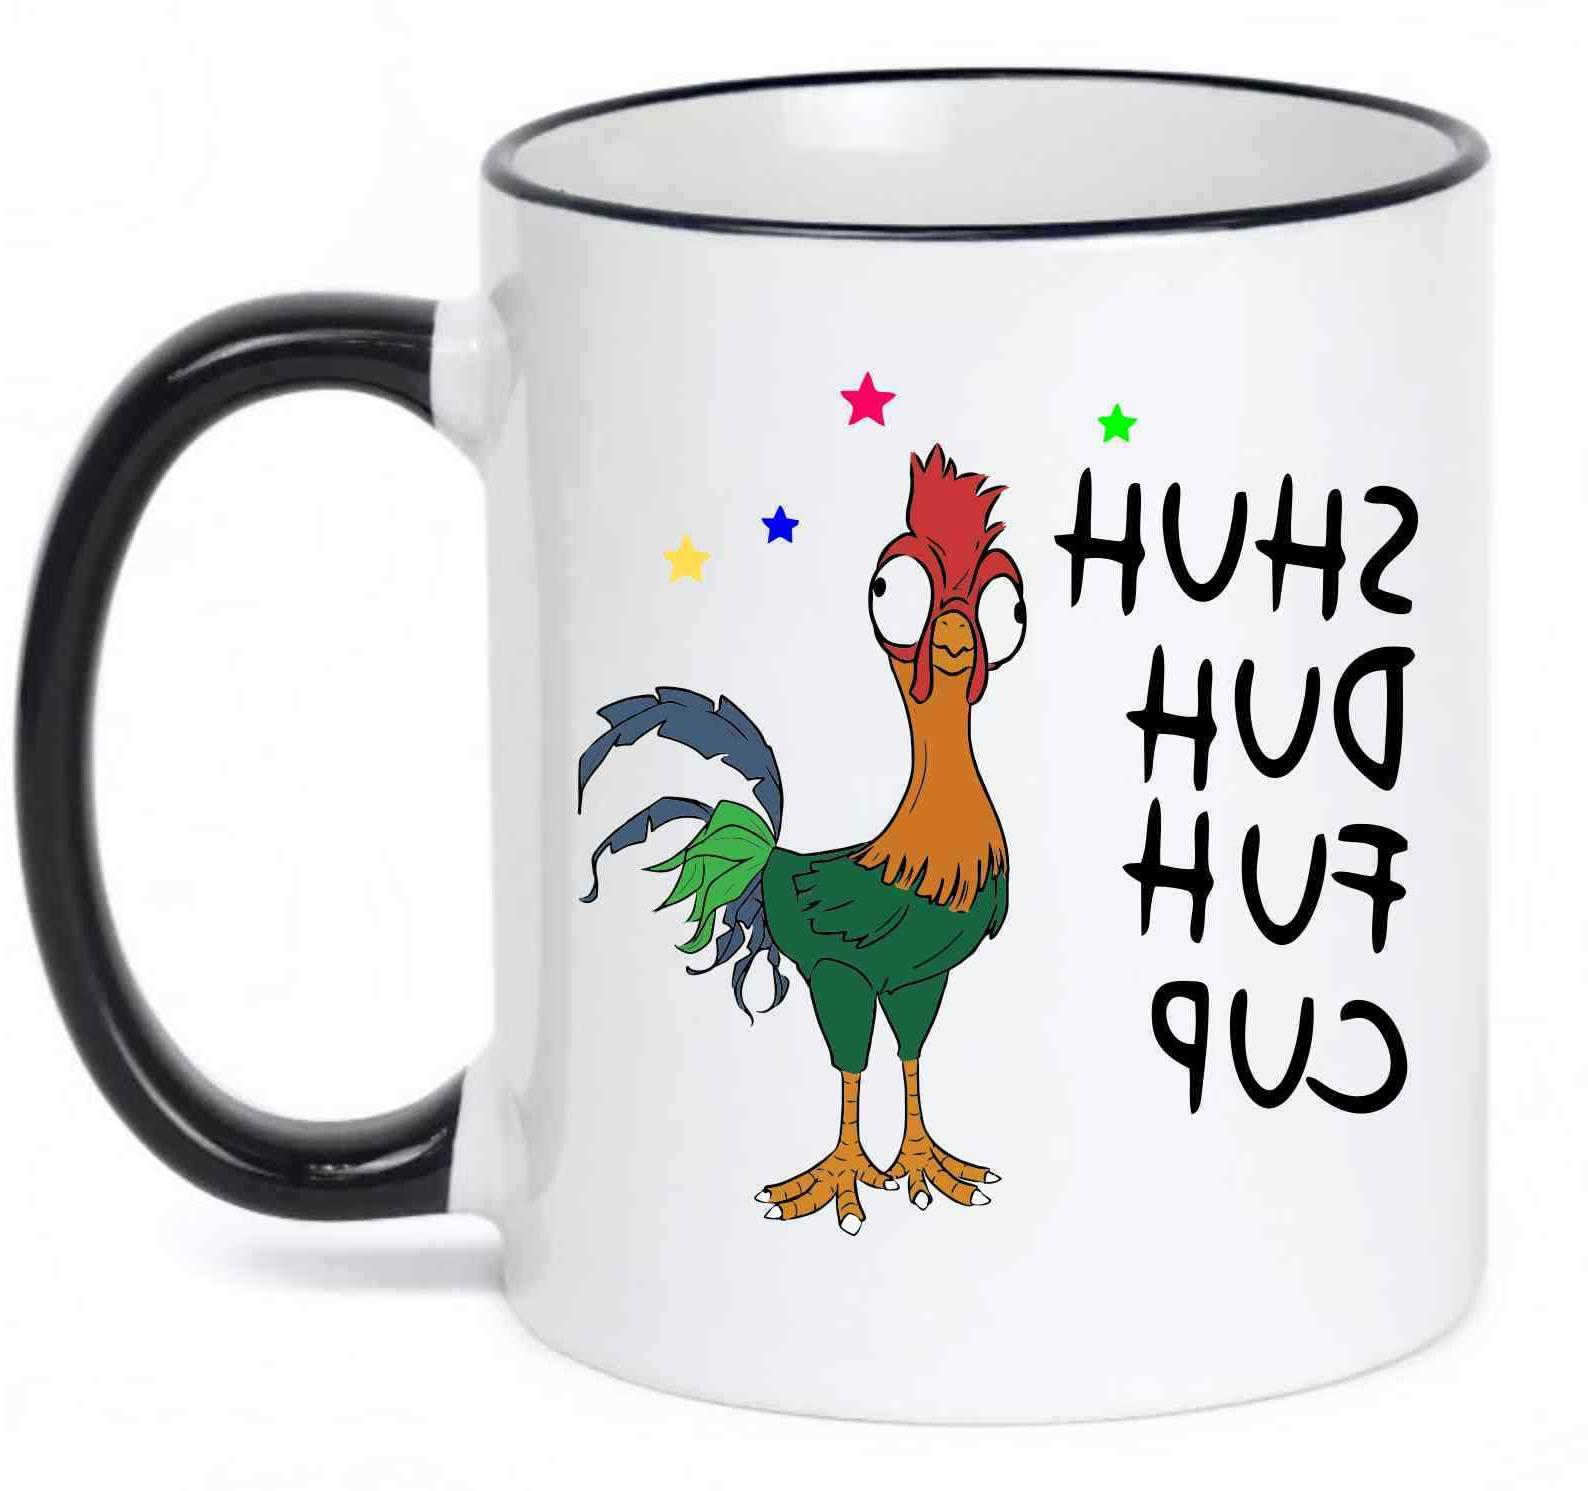 Shuh Duh Fuh Cup Funny Chicken Coffee Mug with Black Handle